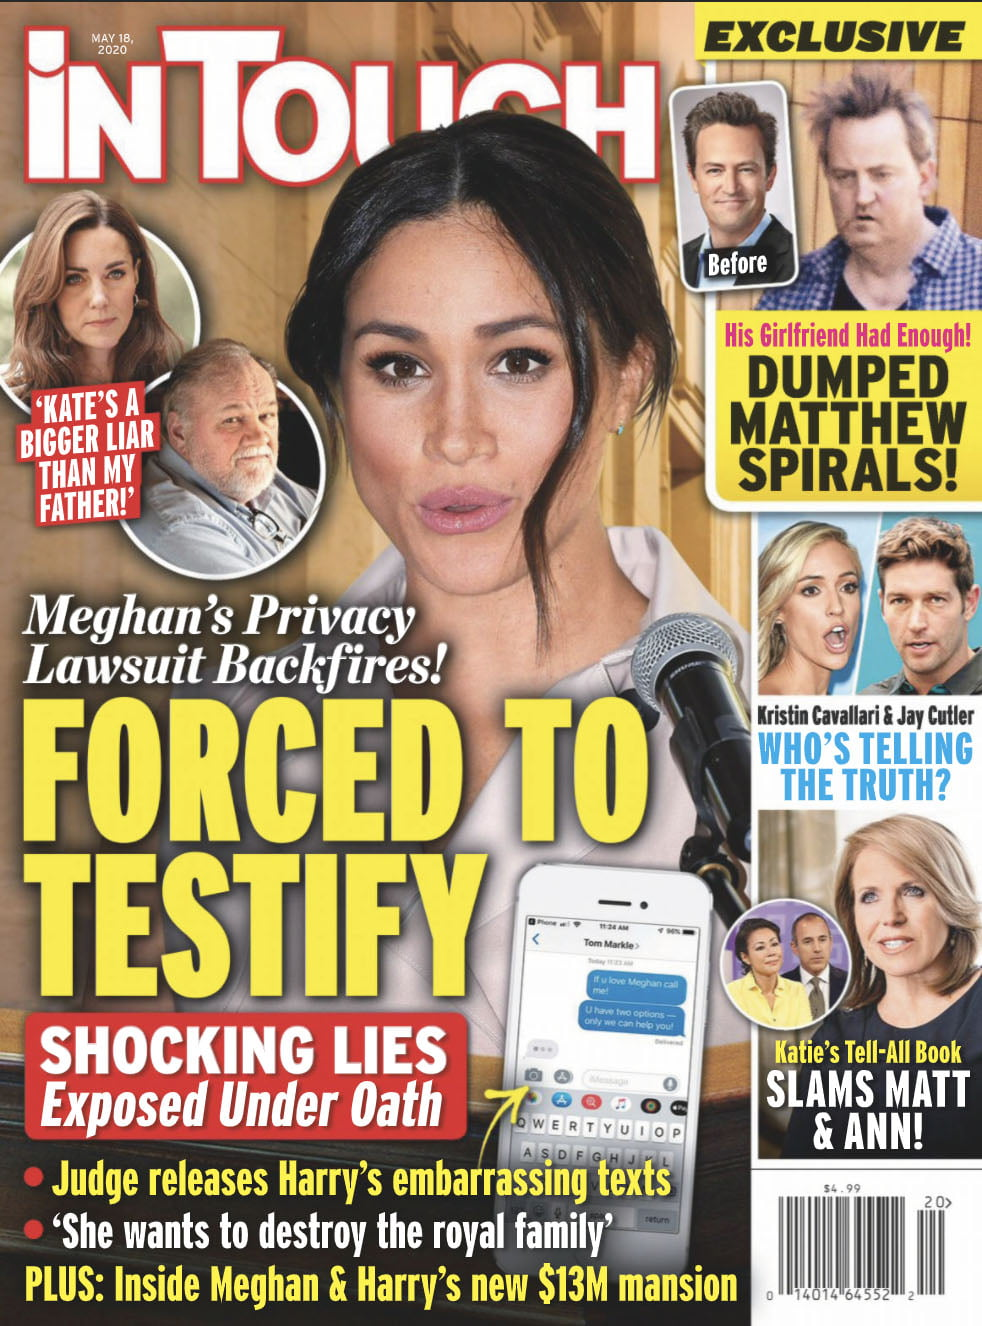 Meghan Markle on the cover of In Touch, dated May 18, 2020